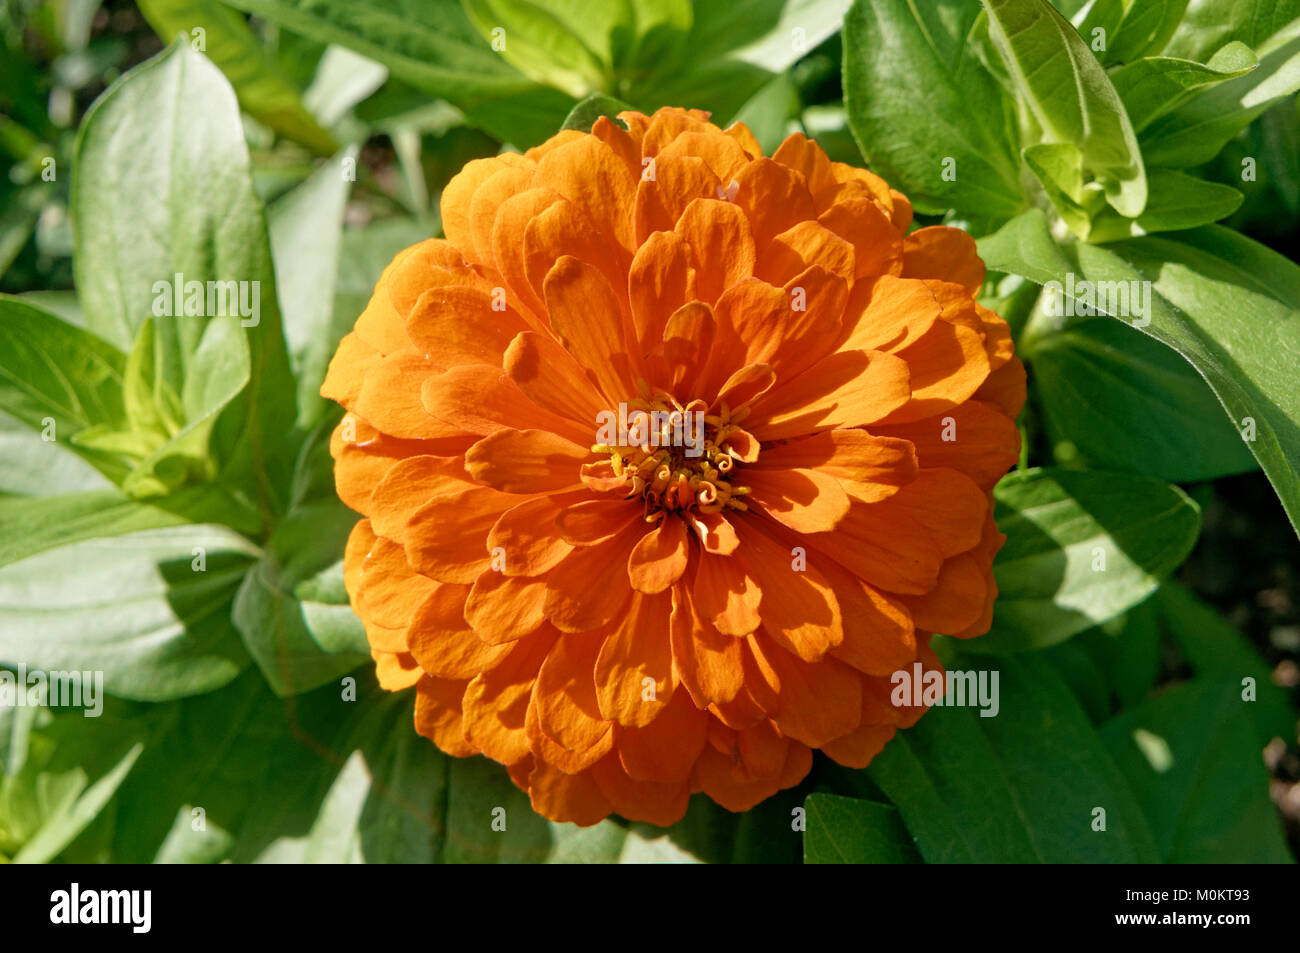 close-up-of-a-bright-orange-flower-in-su